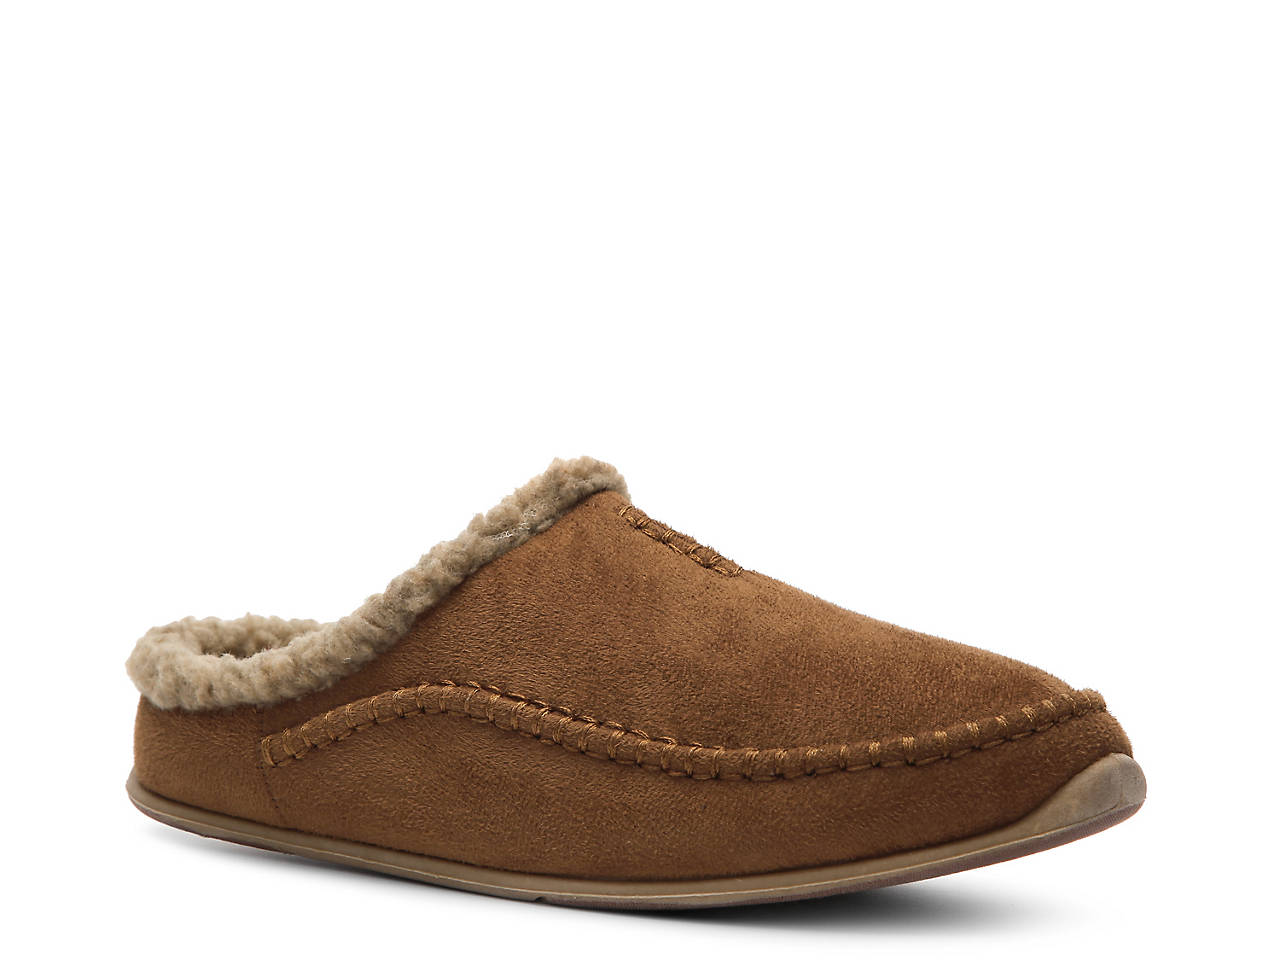 8b7f2be6aff8 Deer Stags Slipperooz Nordic Slipper Men s Shoes